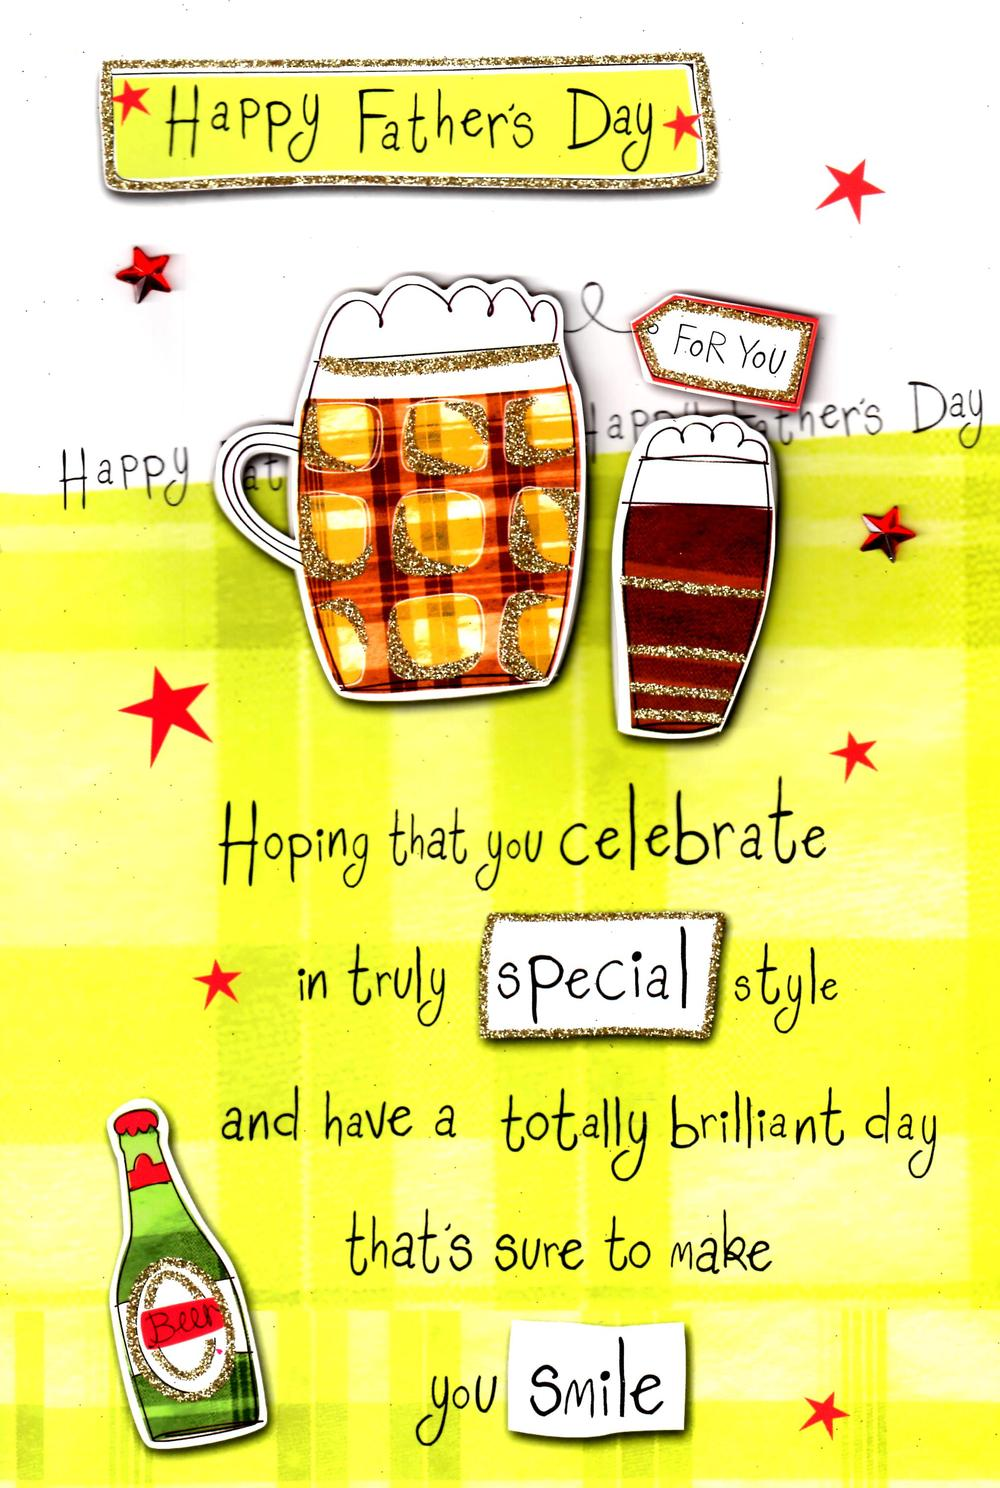 Large Happy Father's Day Hand-Finished Beer Card